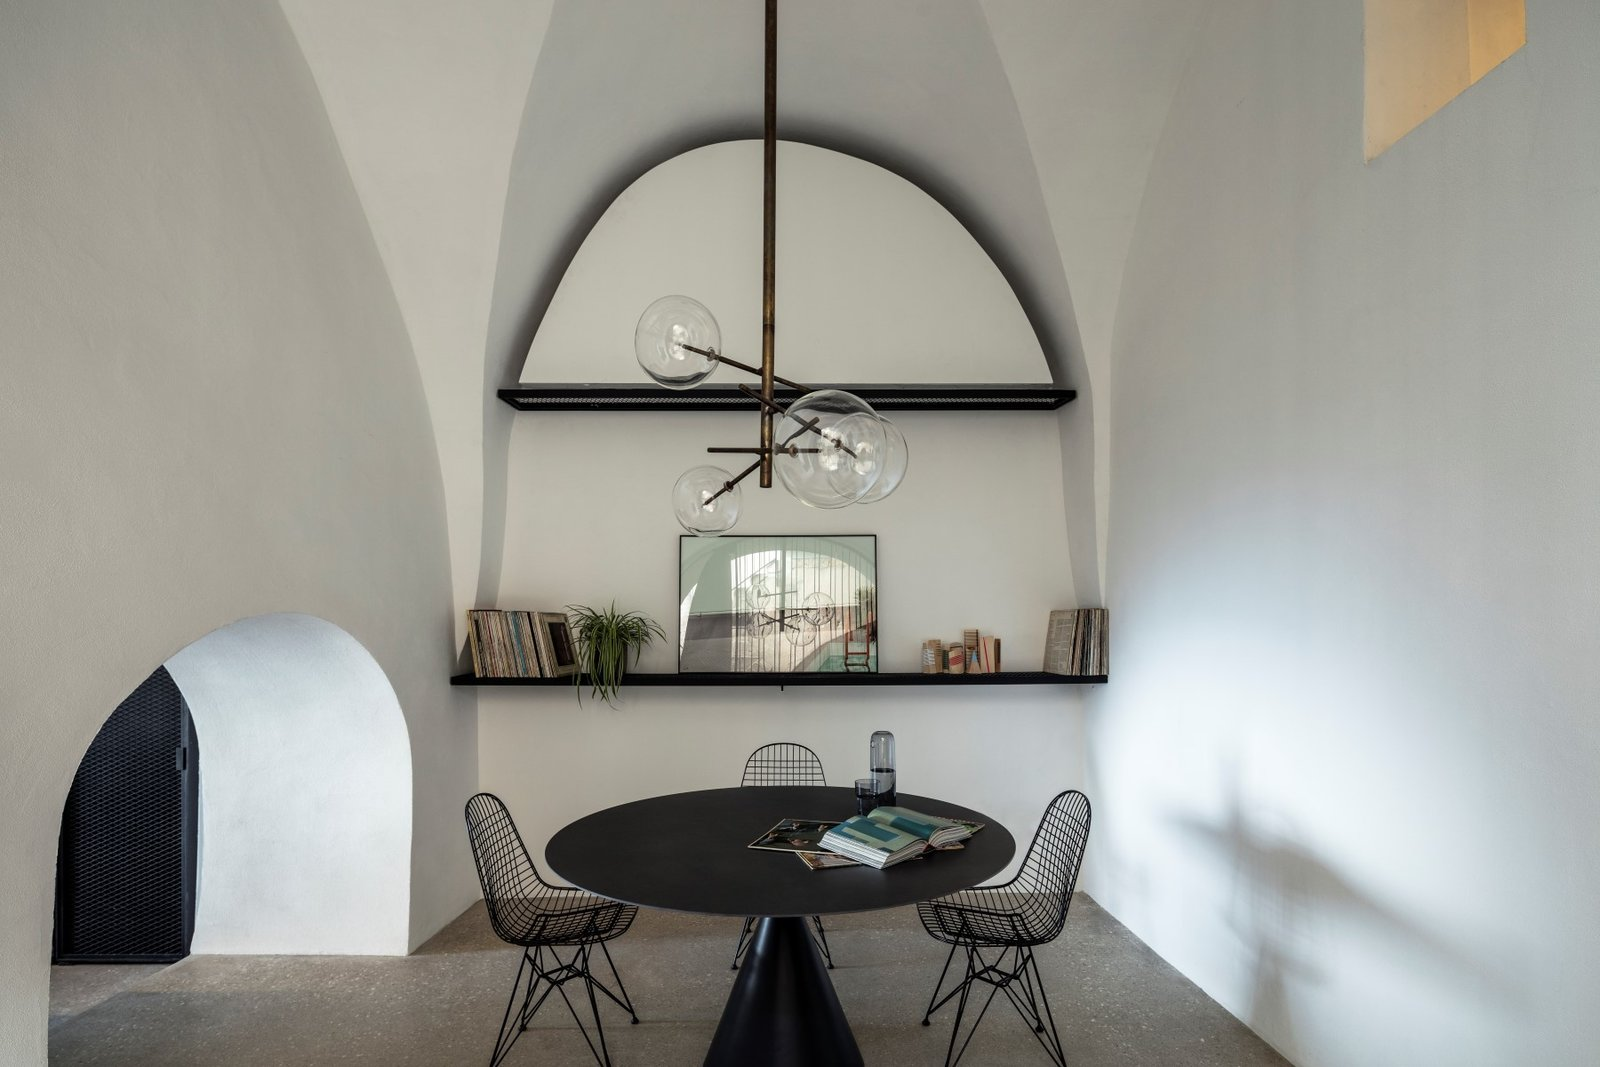 Dining Room, Chair, Table, Terrazzo Floor, and Pendant Lighting  Old Jaffa House